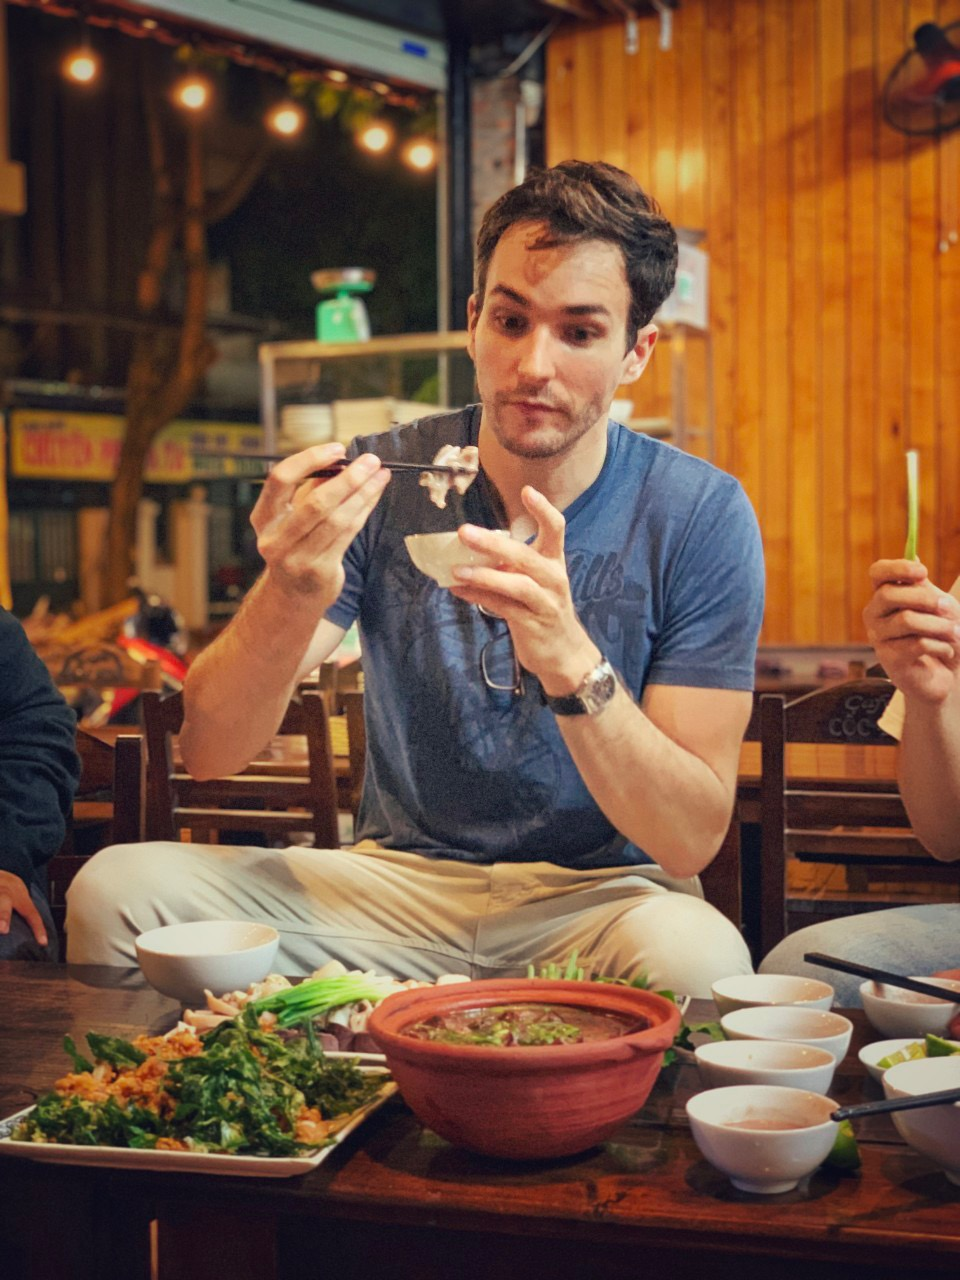 Will Courageux is trying pig intestines dipped in shrimp paste at a restaurant in Hanoi. Photo by courtesy of Will Courageux